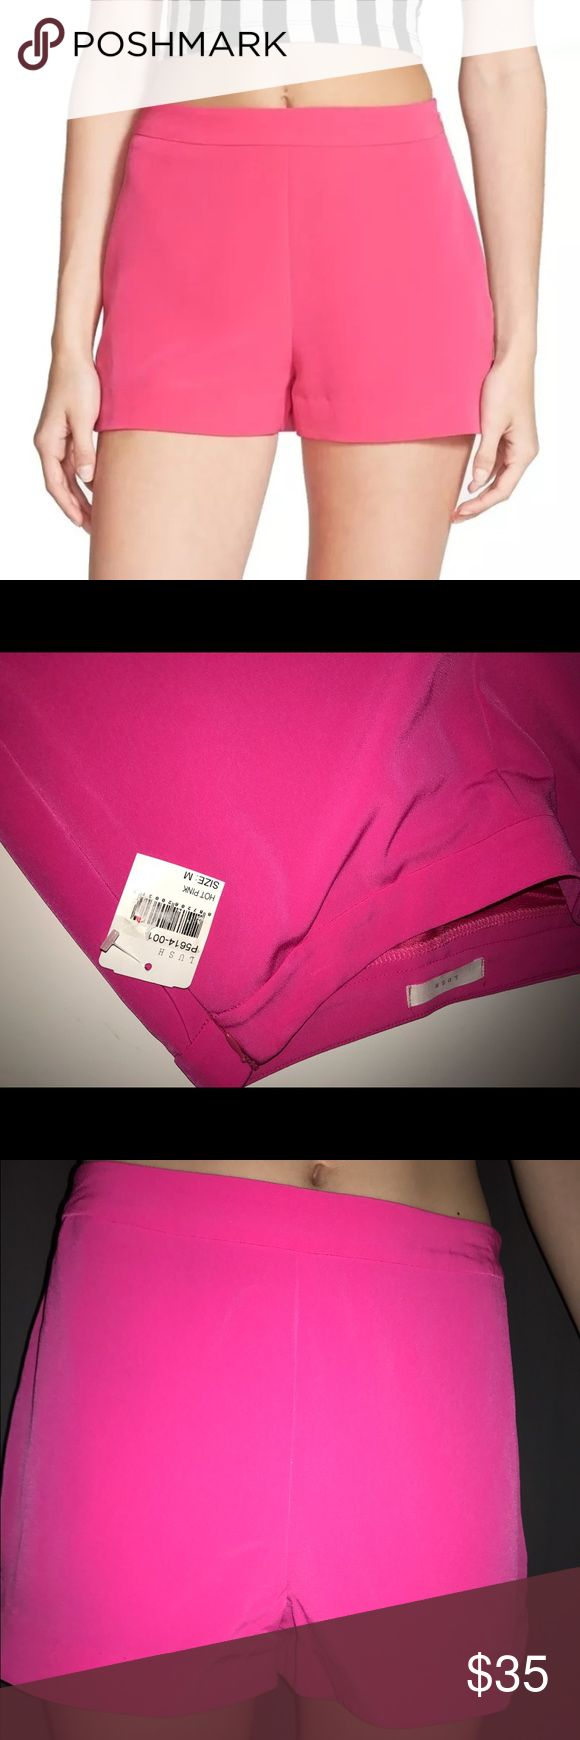 Lush M Bright Hot Pink Shorts Size M, new in size 1 size S fits me better the M is a little loose. Probably good for a 3-5 or so Lush Shorts